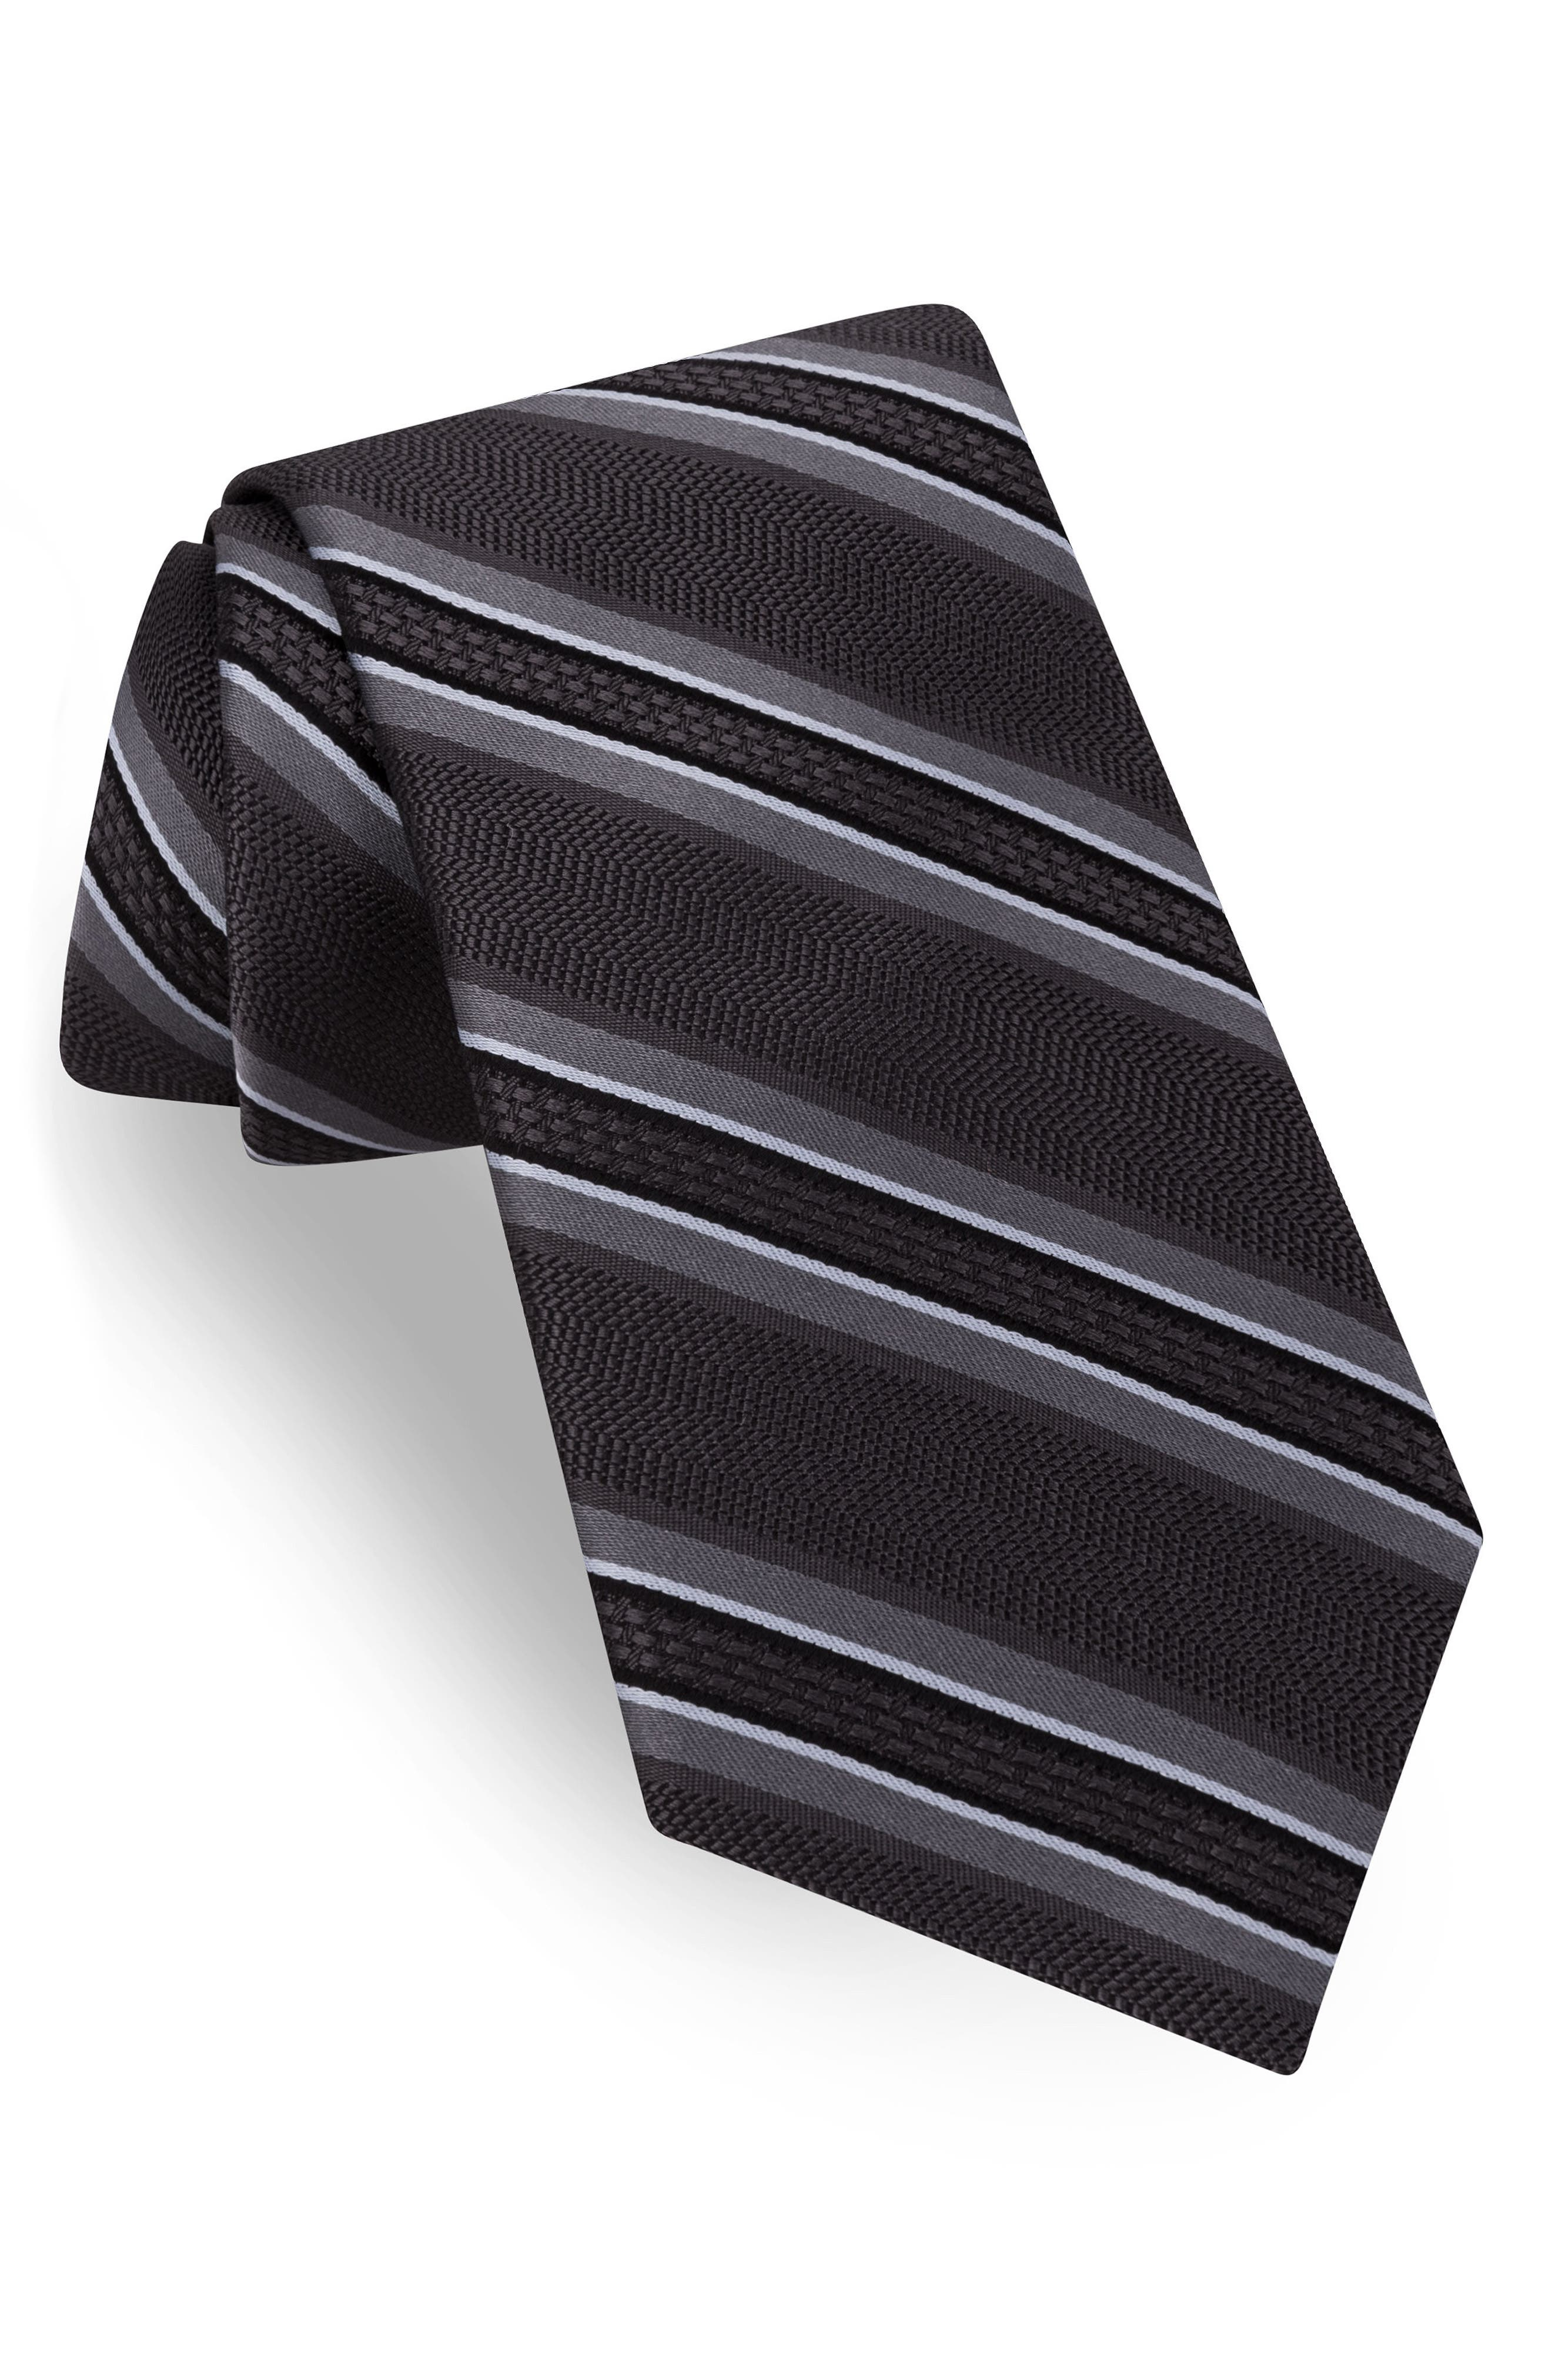 Jetset Stripe Silk Tie,                             Main thumbnail 1, color,                             Charcoal